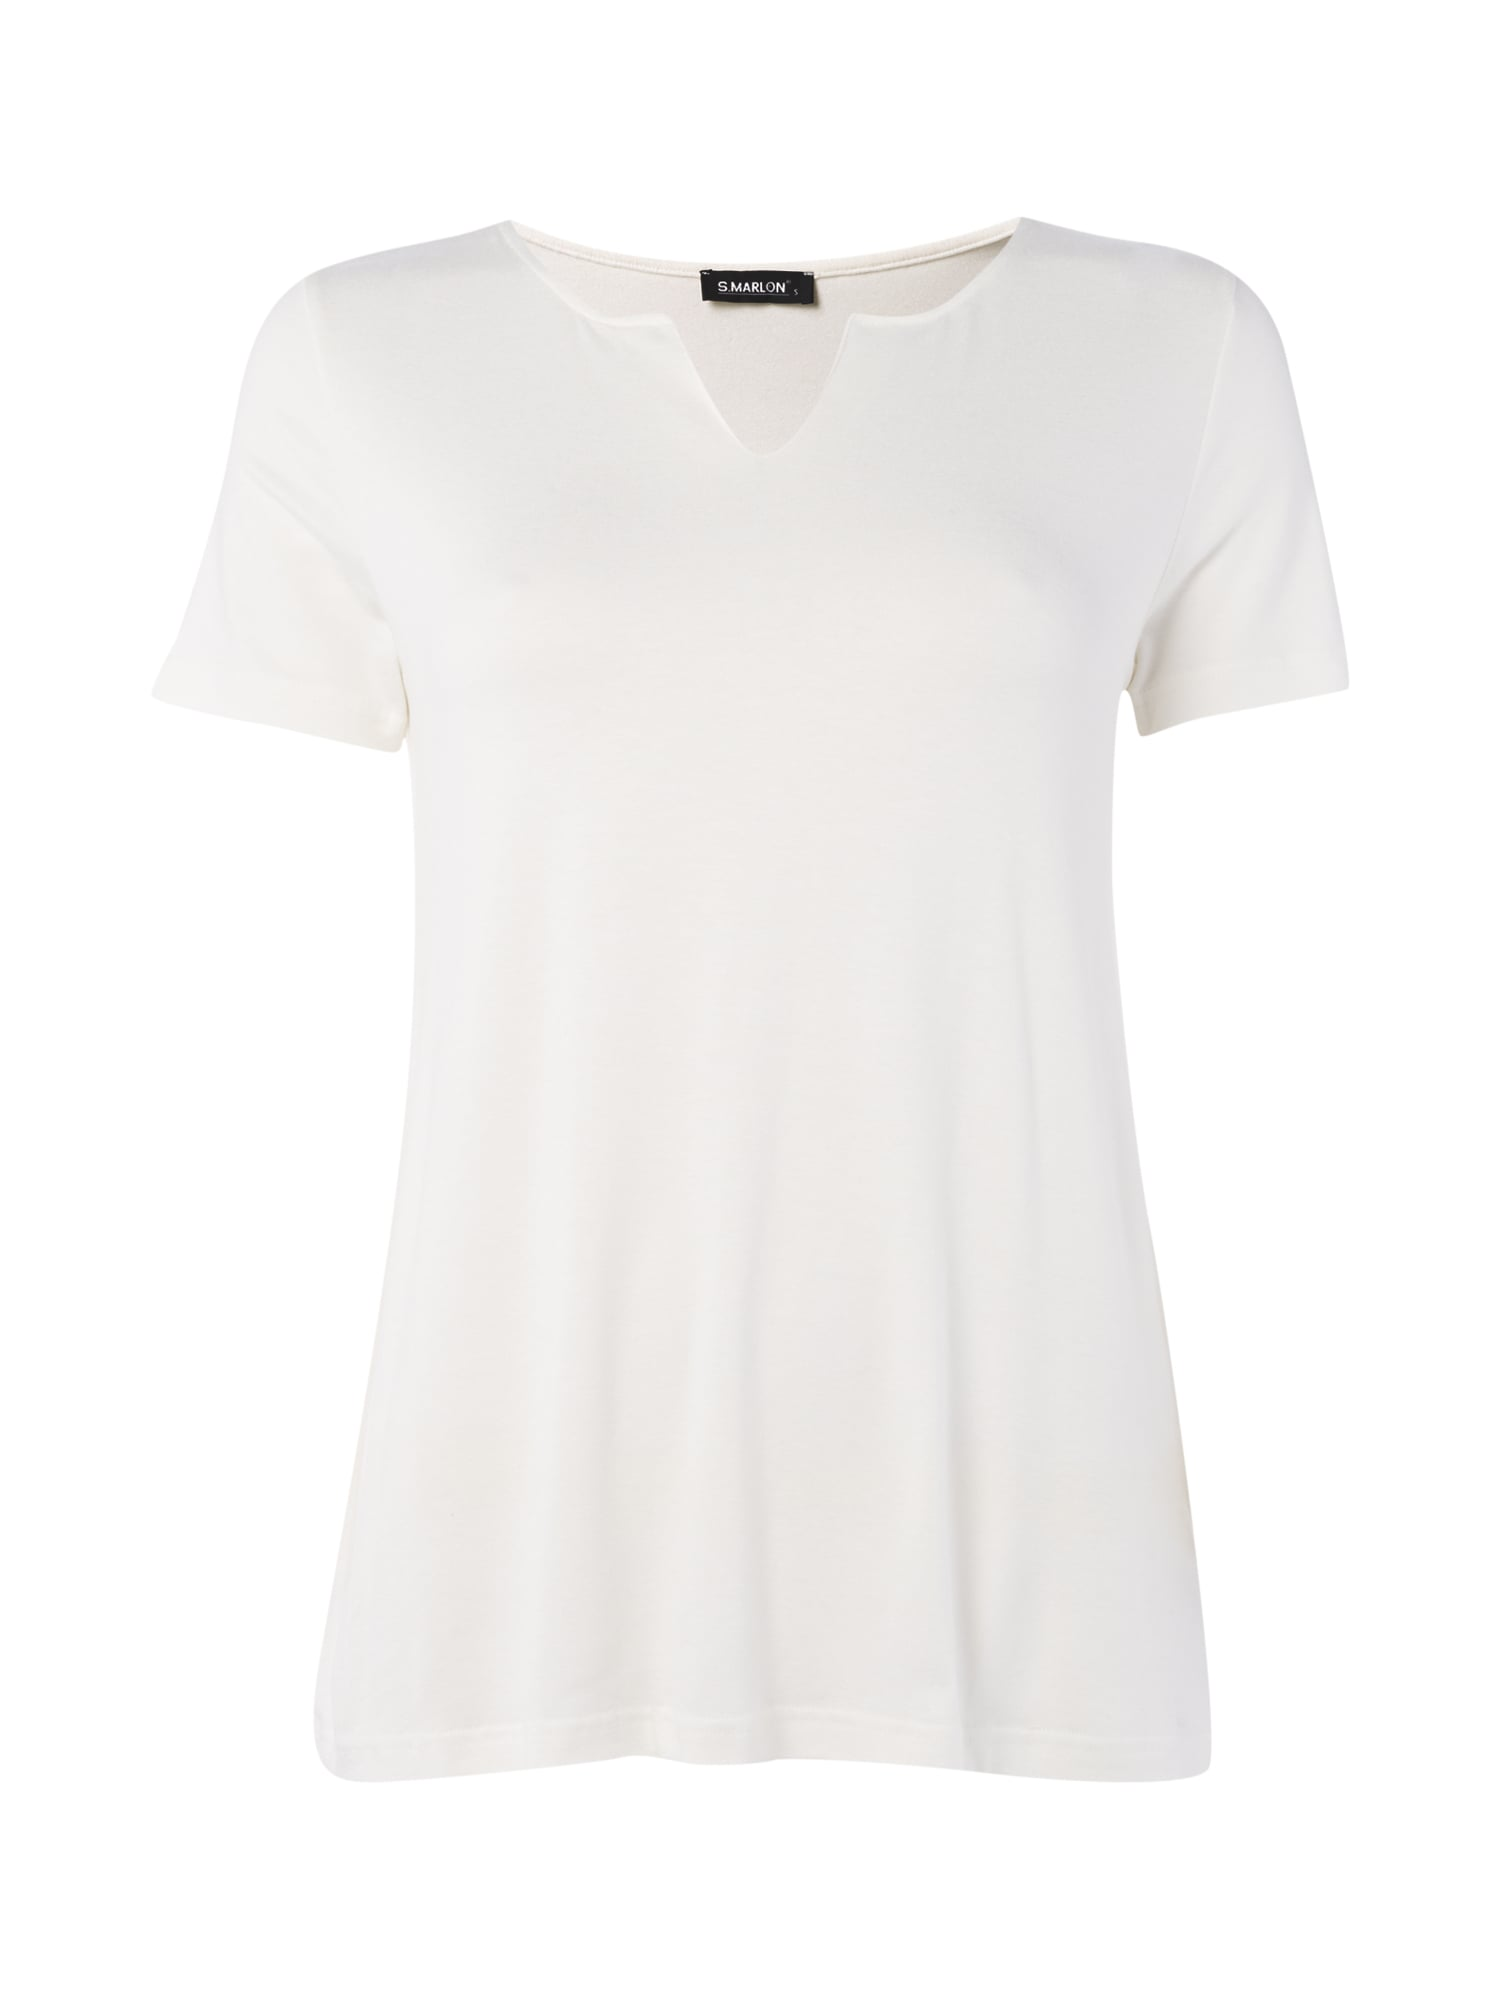 S.Marlon T-shirts – Casual and fashionable